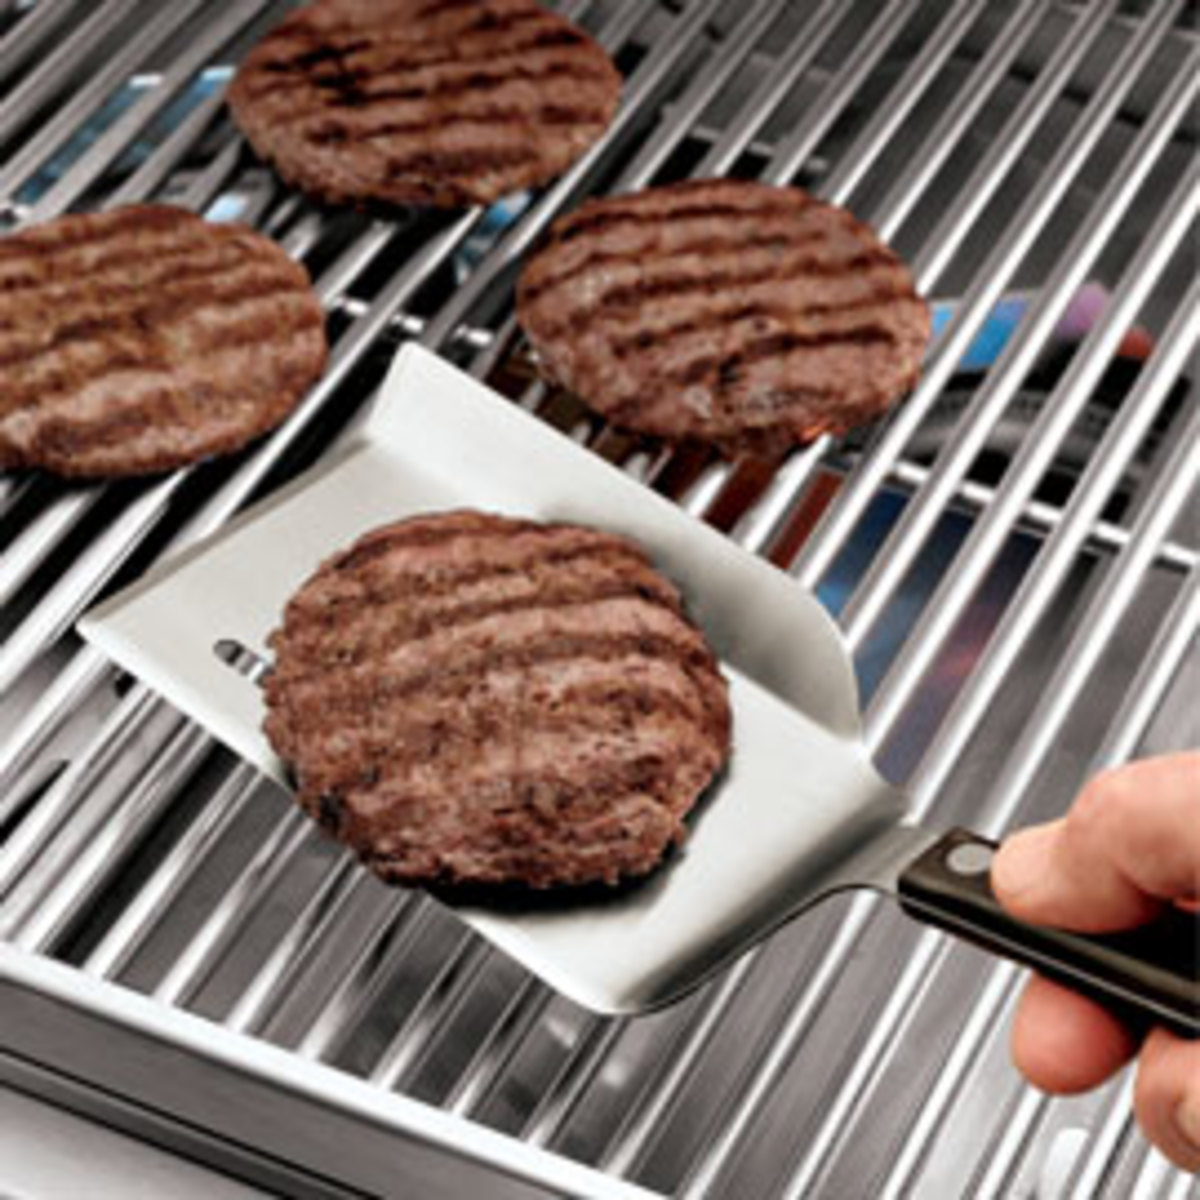 This BBQ Backstop Spatula keeps your grilled food from rolling away. This one runs about $10 at www.marinecorpsball.com